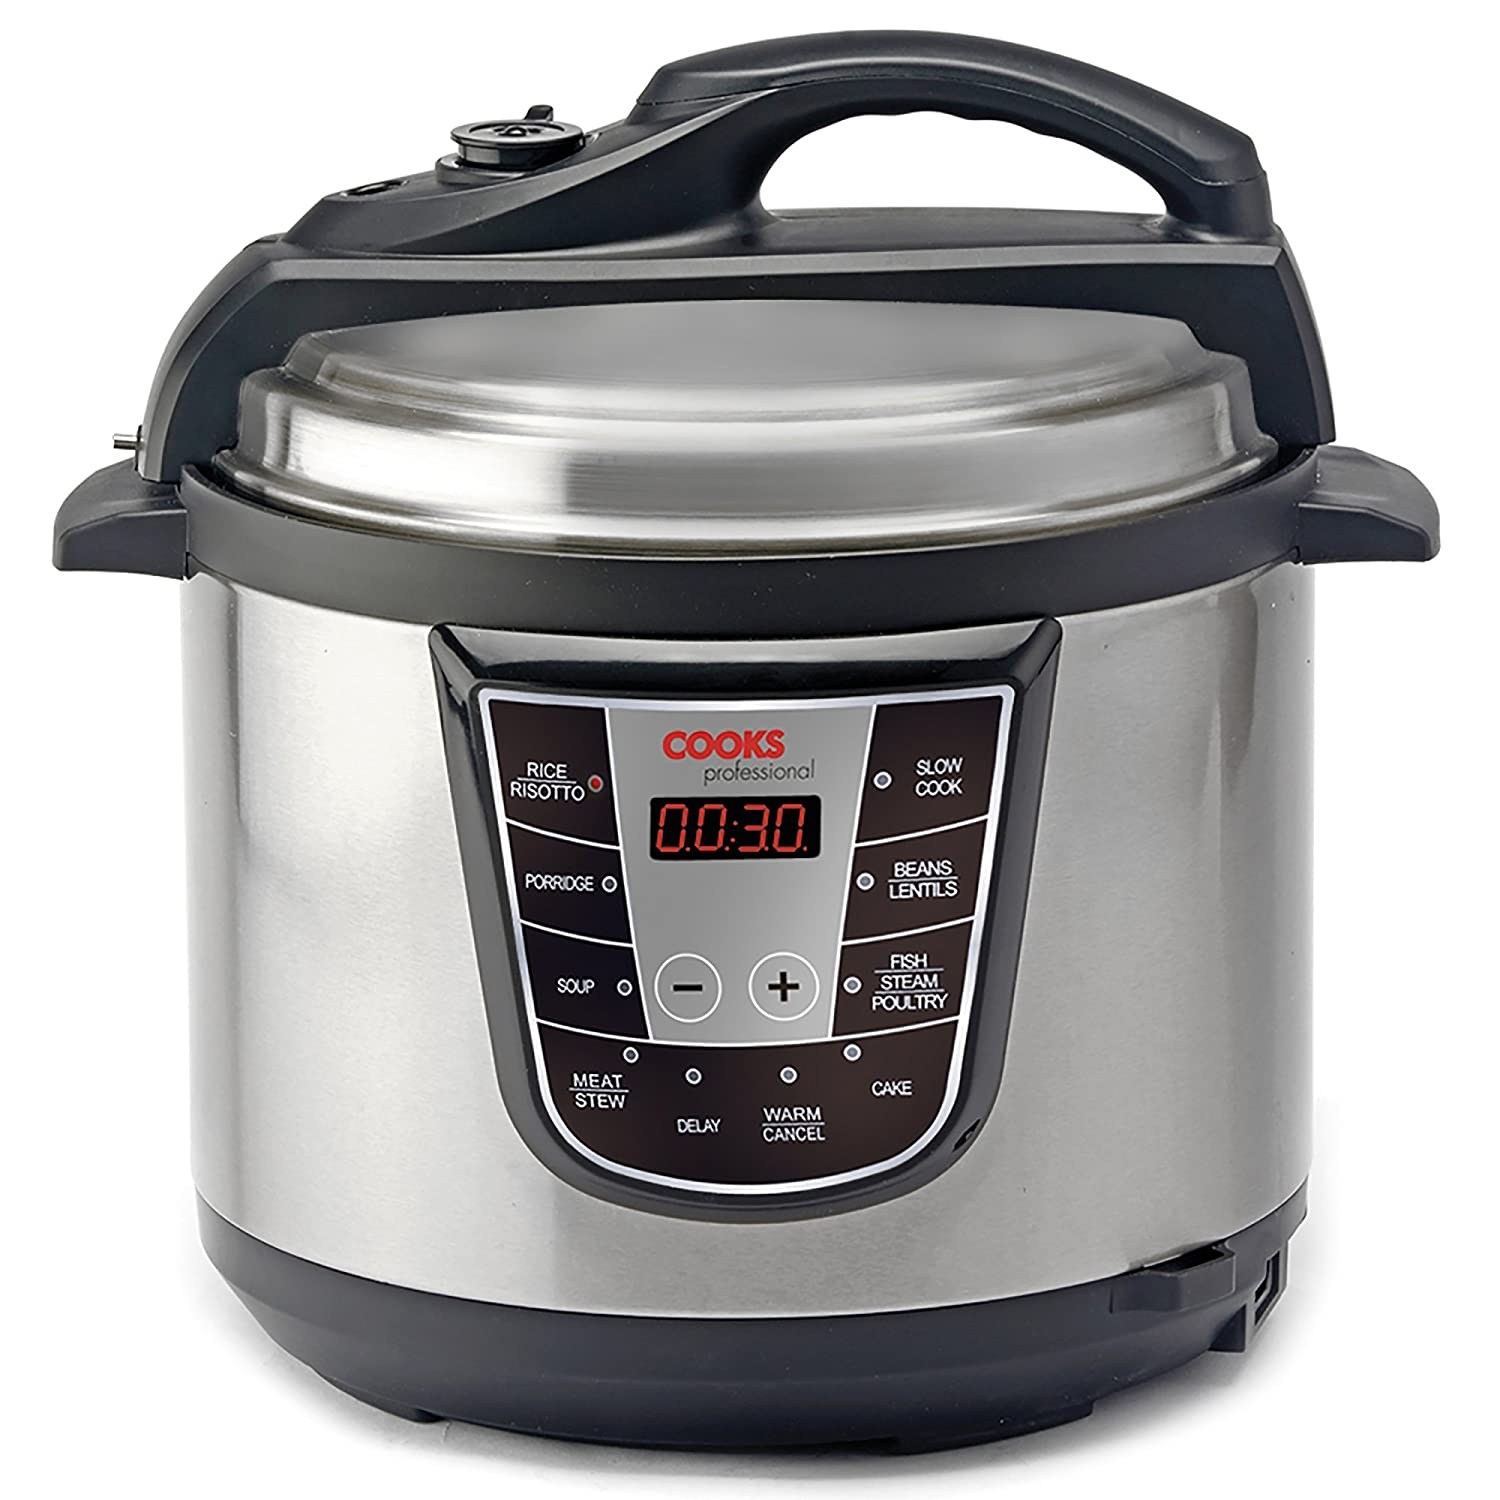 8-in-1 Electric Pressure Cooker with 5 Litre Stainless Steel Cooking Pot, 900W by Cooks Professional